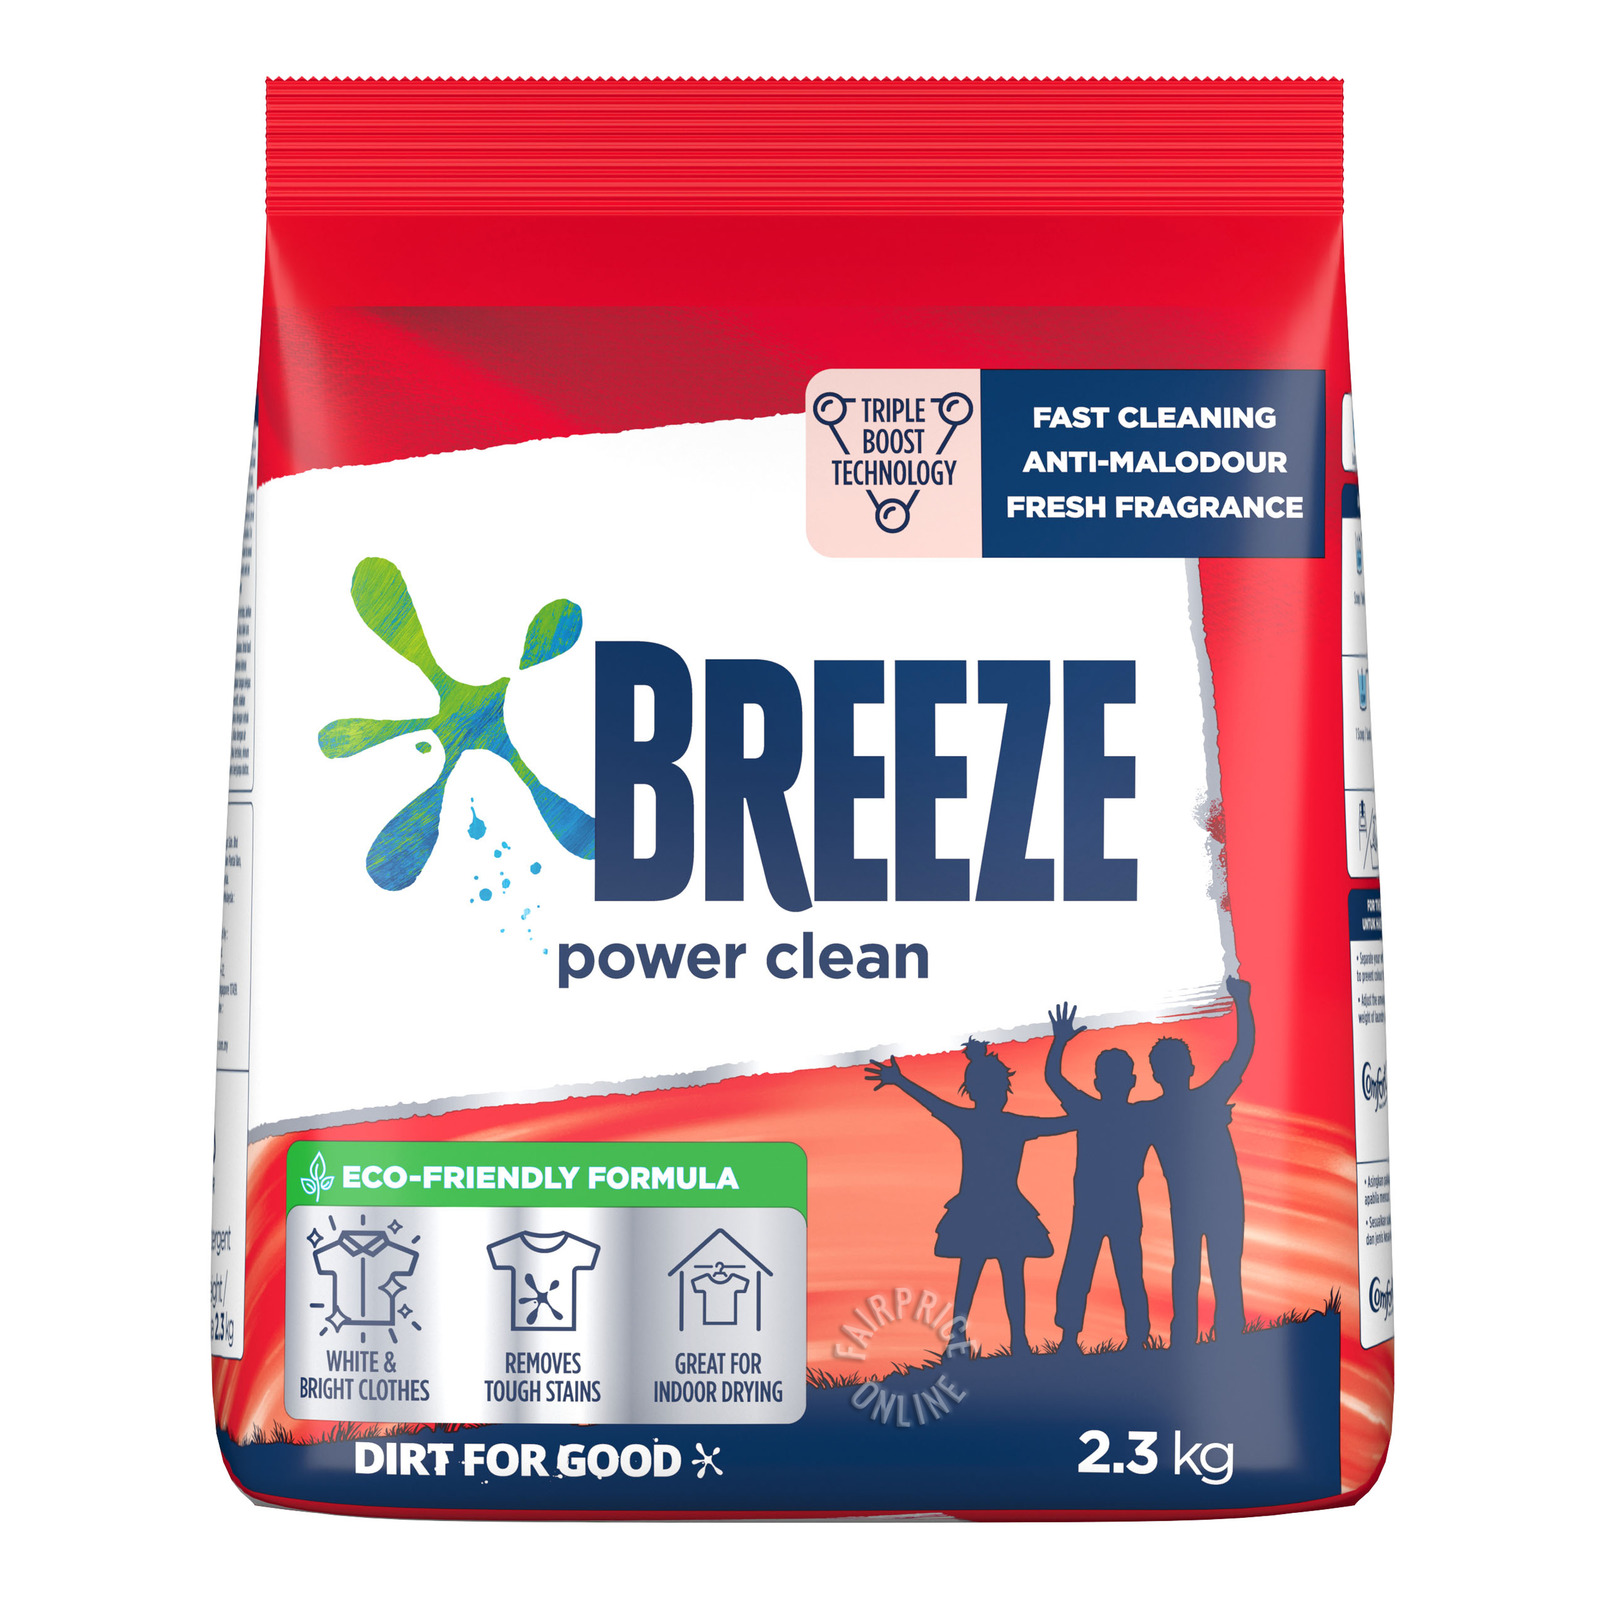 BREEZE Laundry Powder Detergent Power Clean 2.3kg